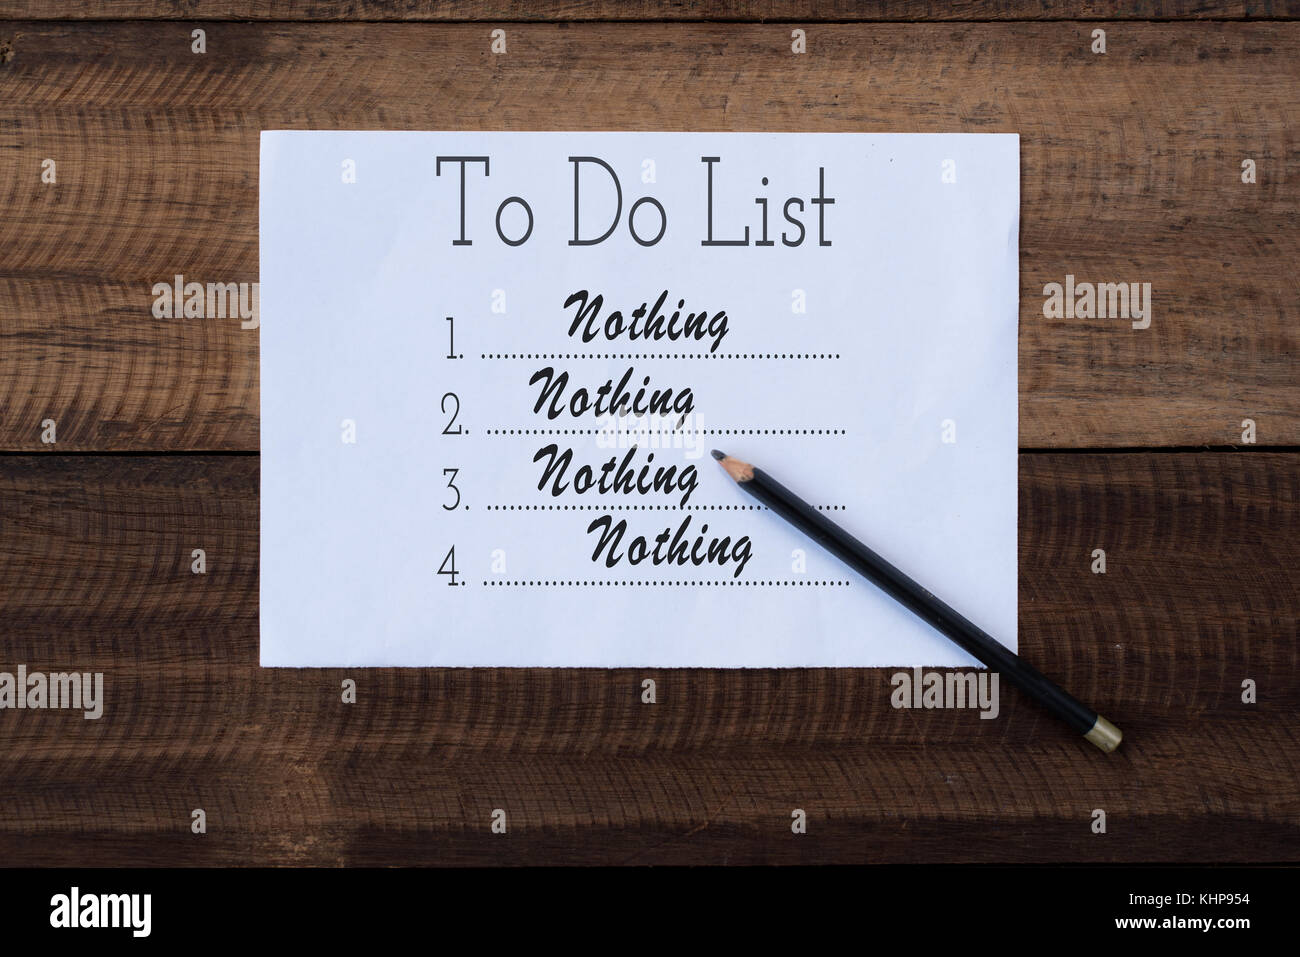 nothing to do list on paper.to do list note on wooden background.lifestyle concept - Stock Image